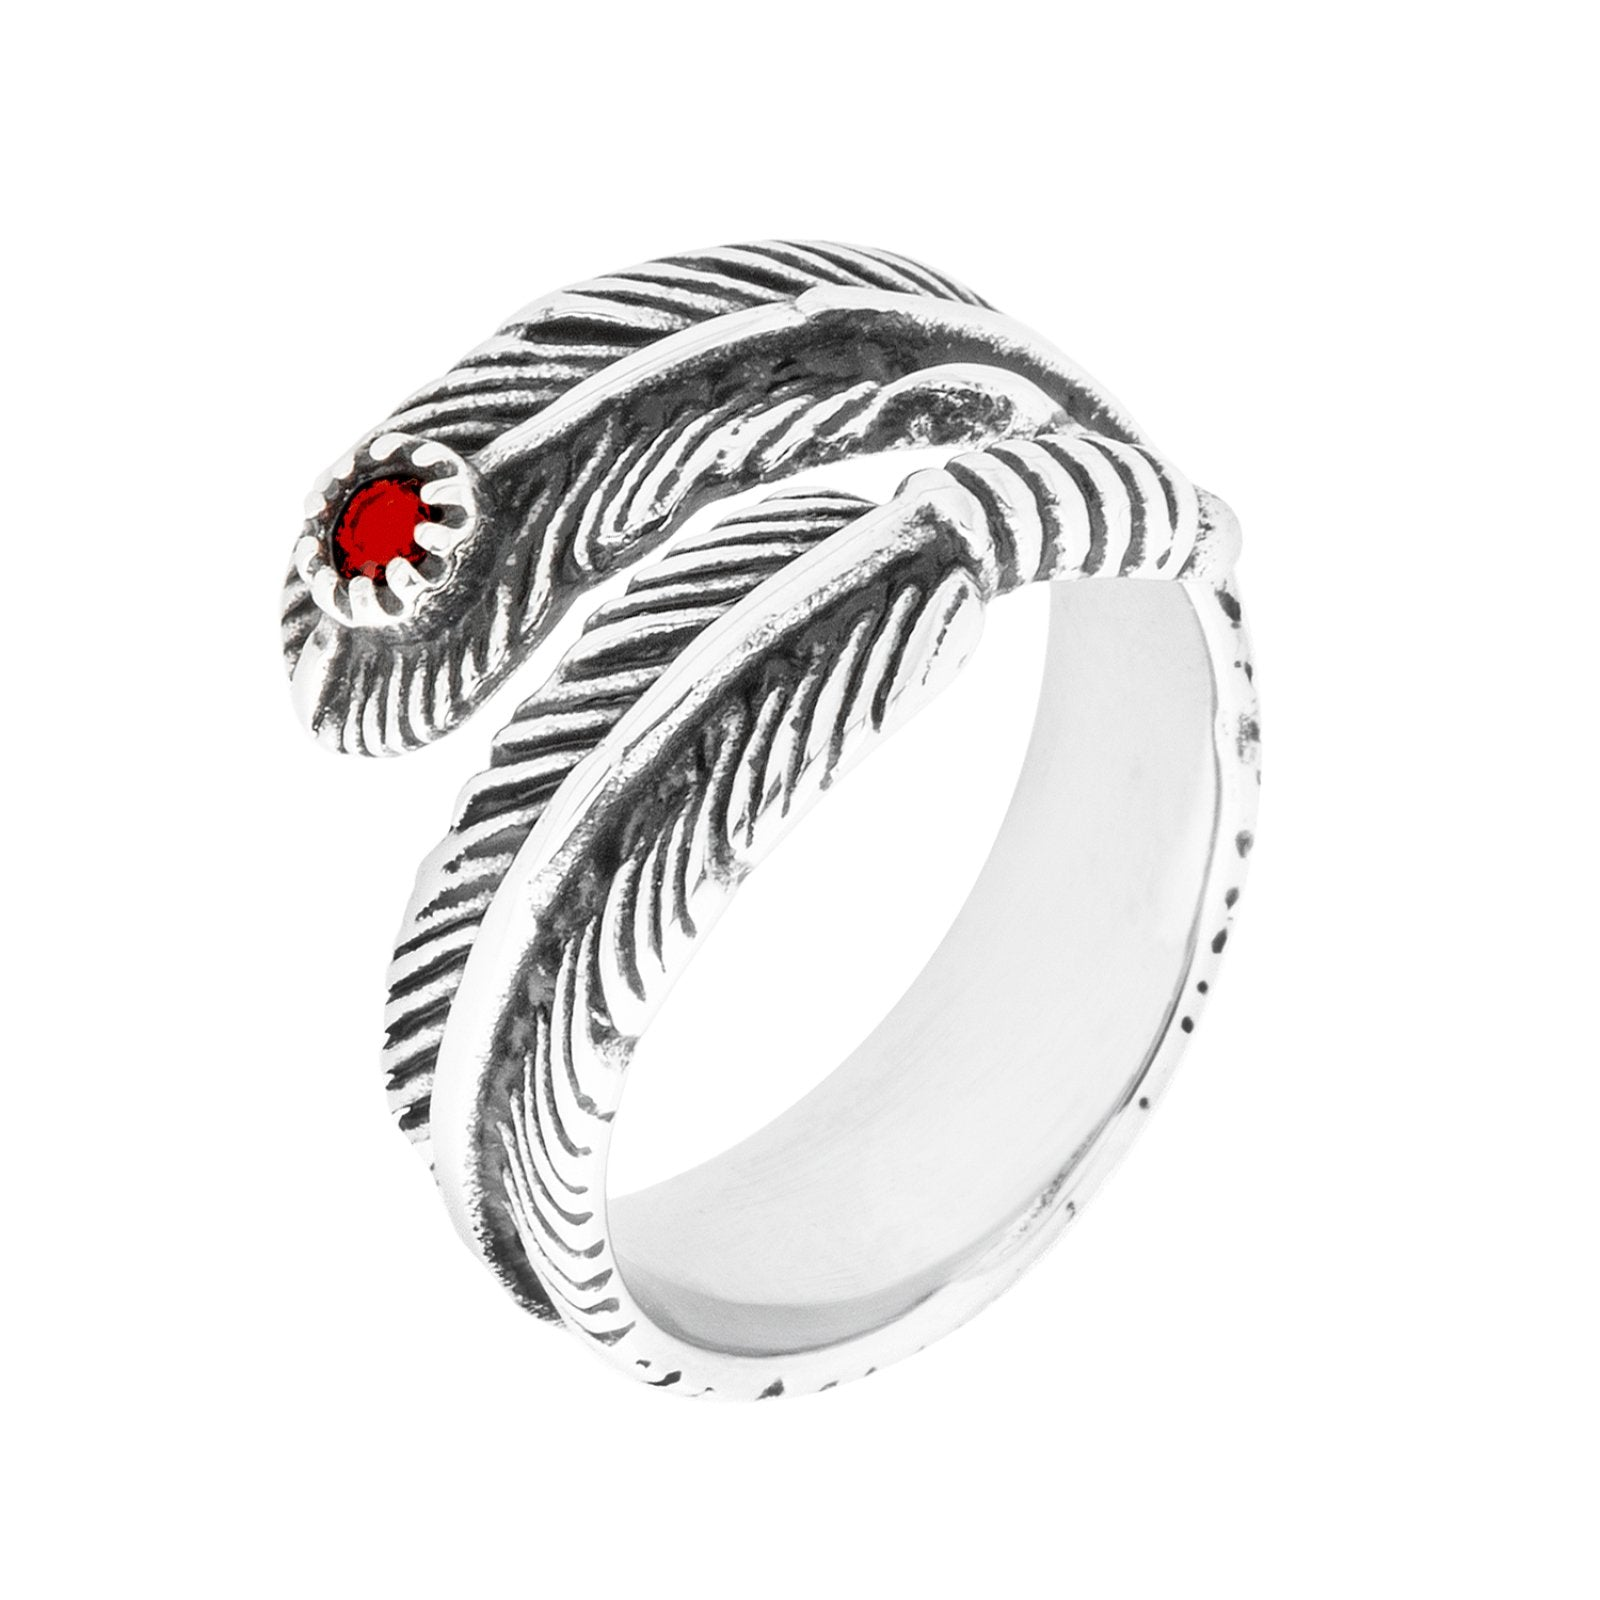 Feather Ring with Red Stone